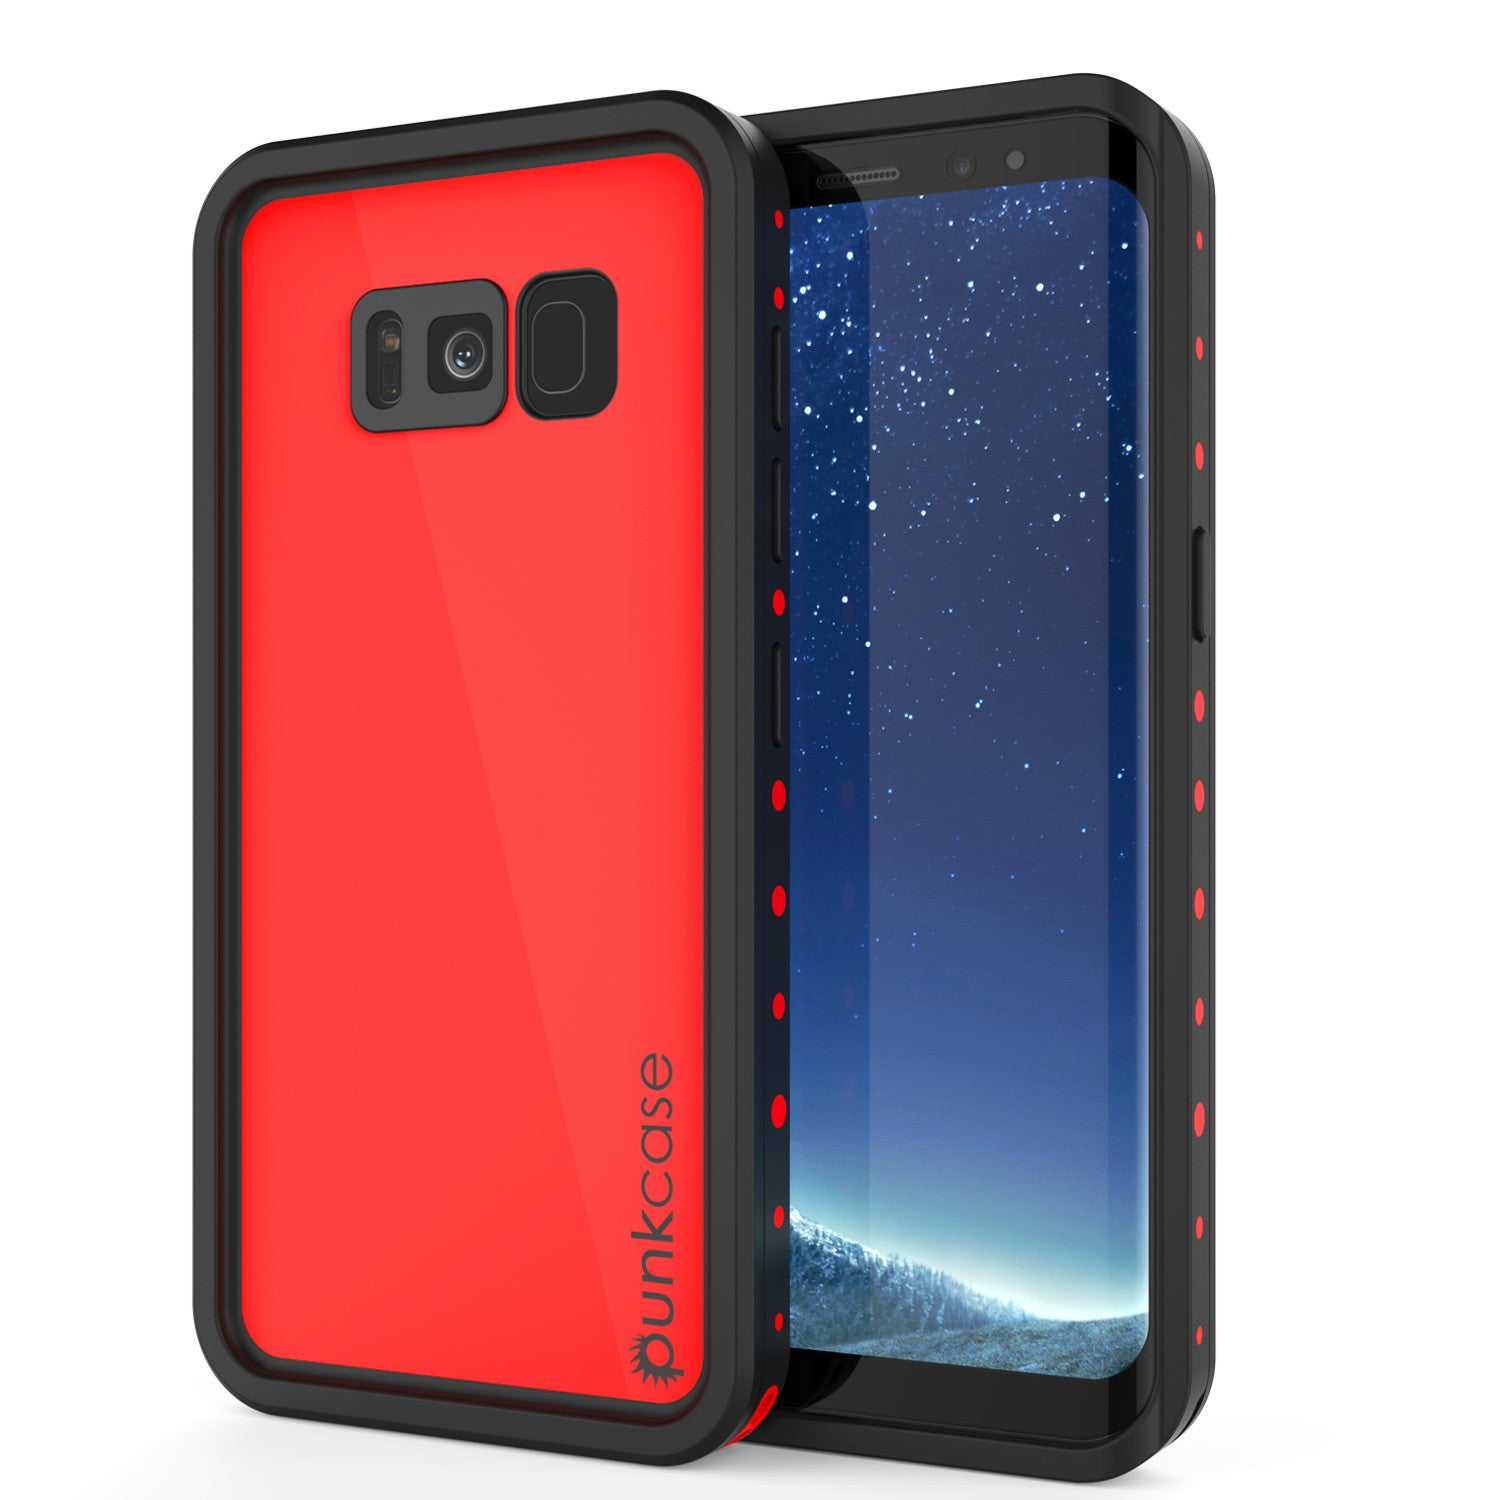 Galaxy S8 Waterproof Case PunkCase StudStar Red Thin 6.6ft Underwater IP68 Shock/Snow Proof